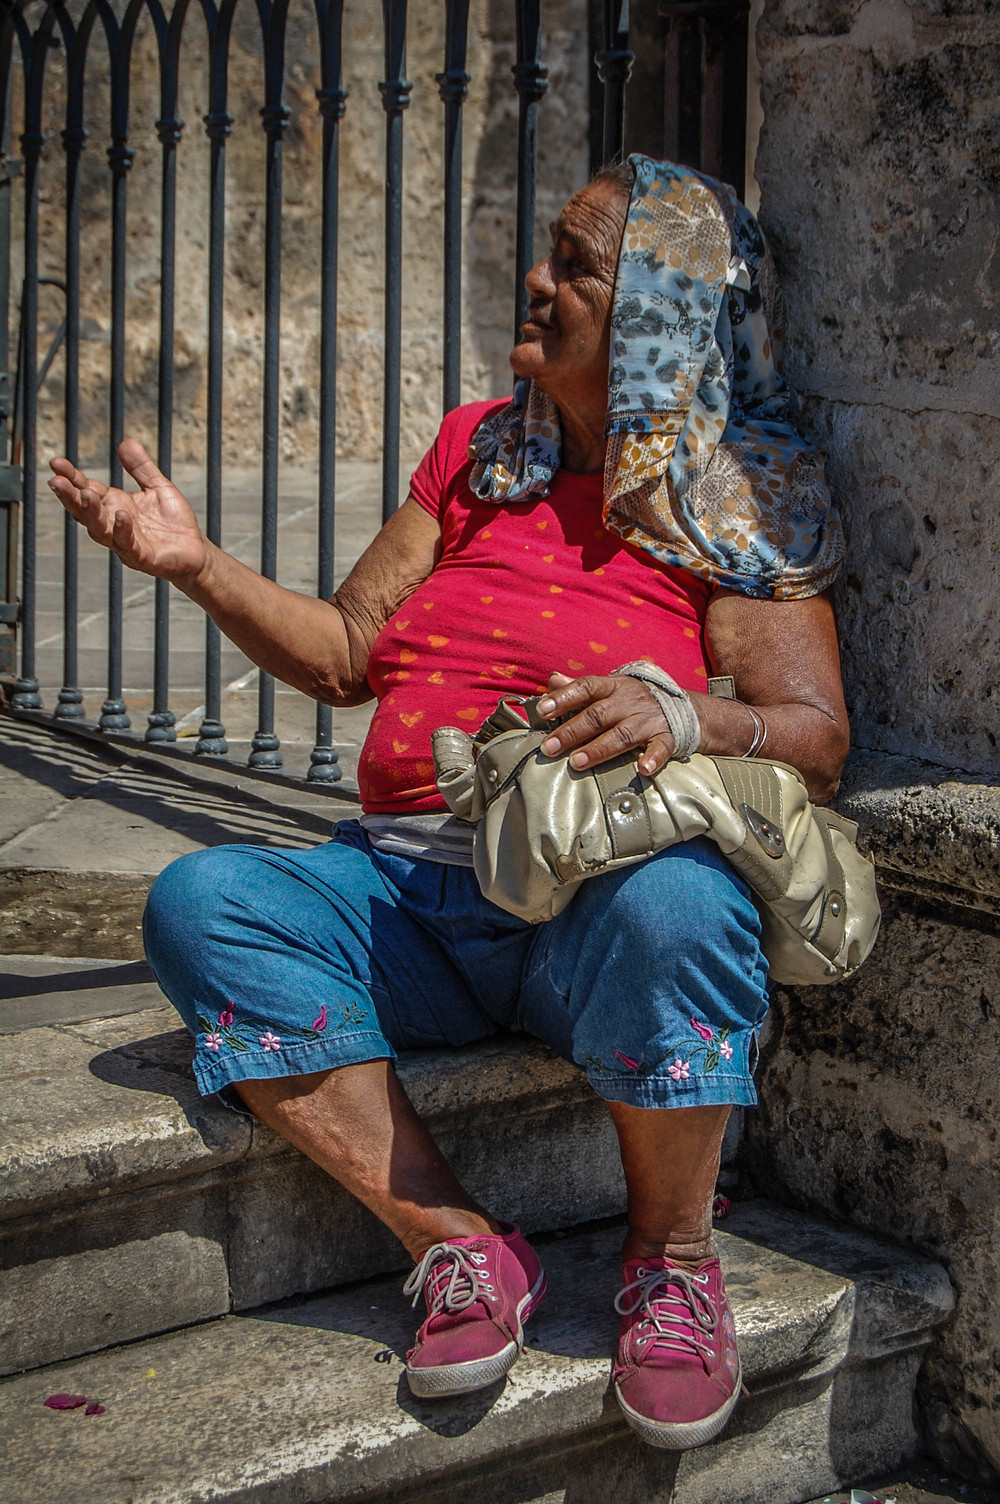 Beggar woman Old Havana, Cuba Nikon D40, 18-55mm F3.5 3.13